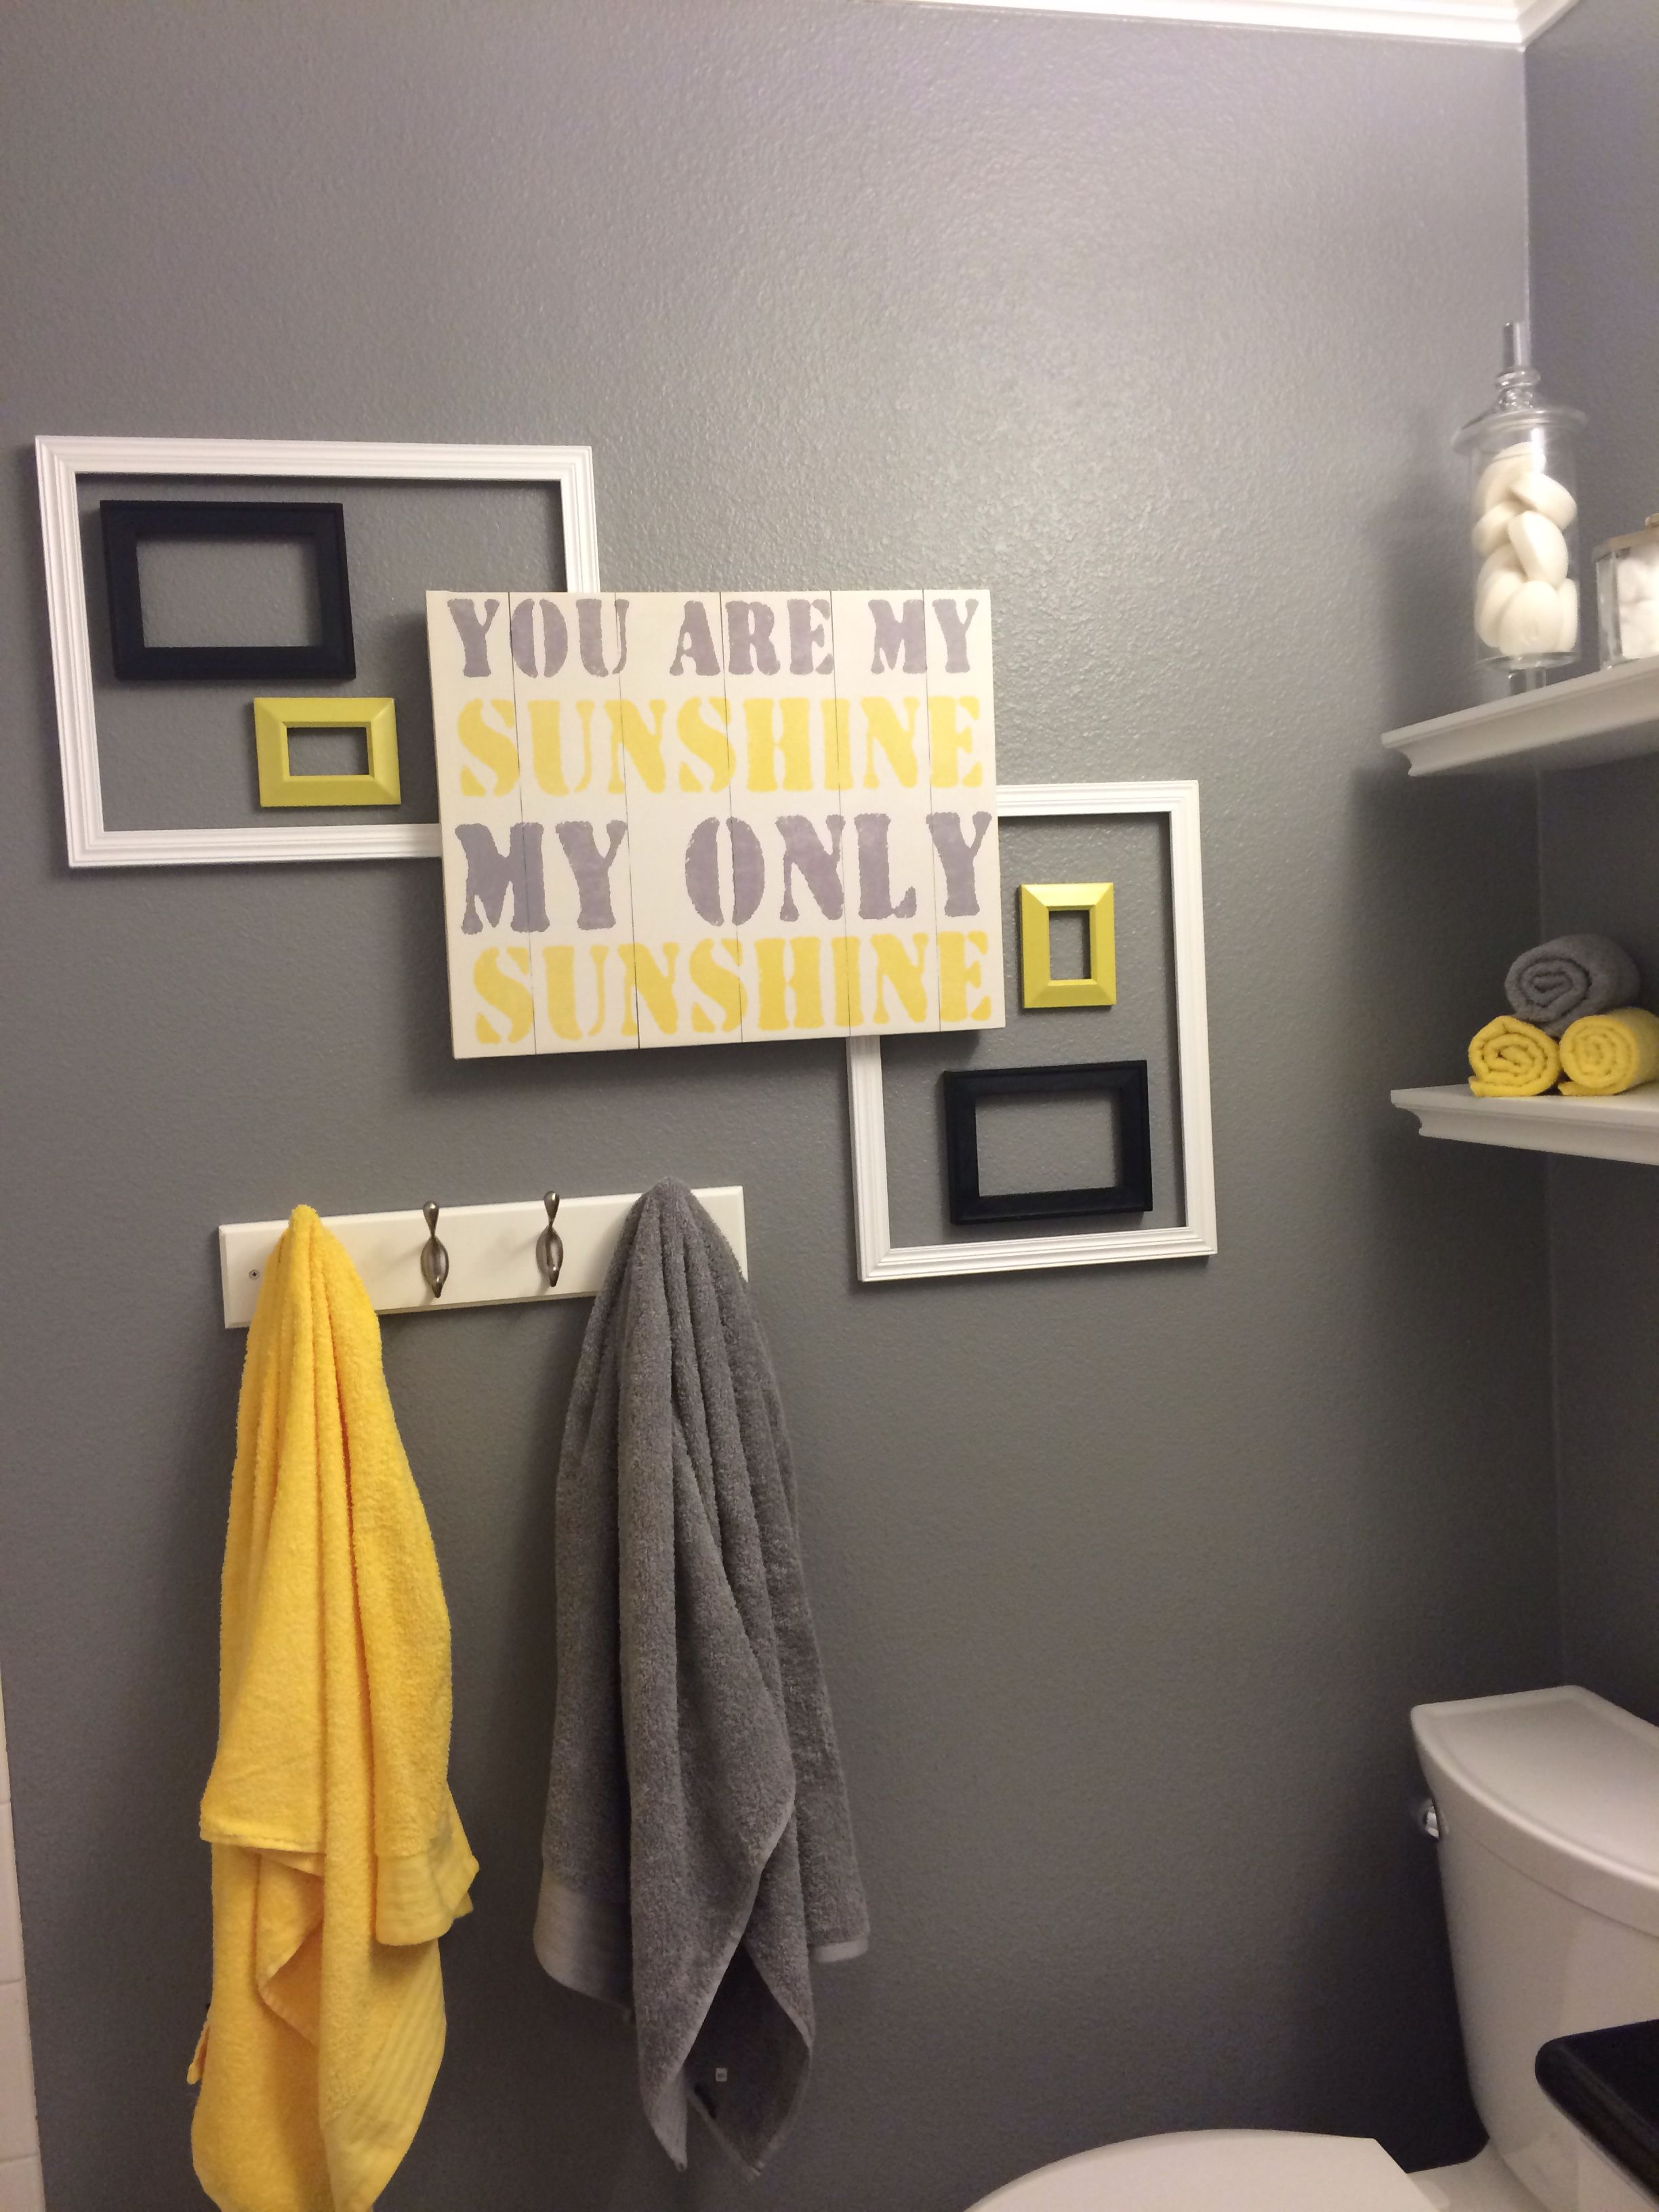 Pin By Gloria Tucker On My Dream Home Gray Bathroom Decor Yellow Bathroom Decor Kid Bathroom Decor